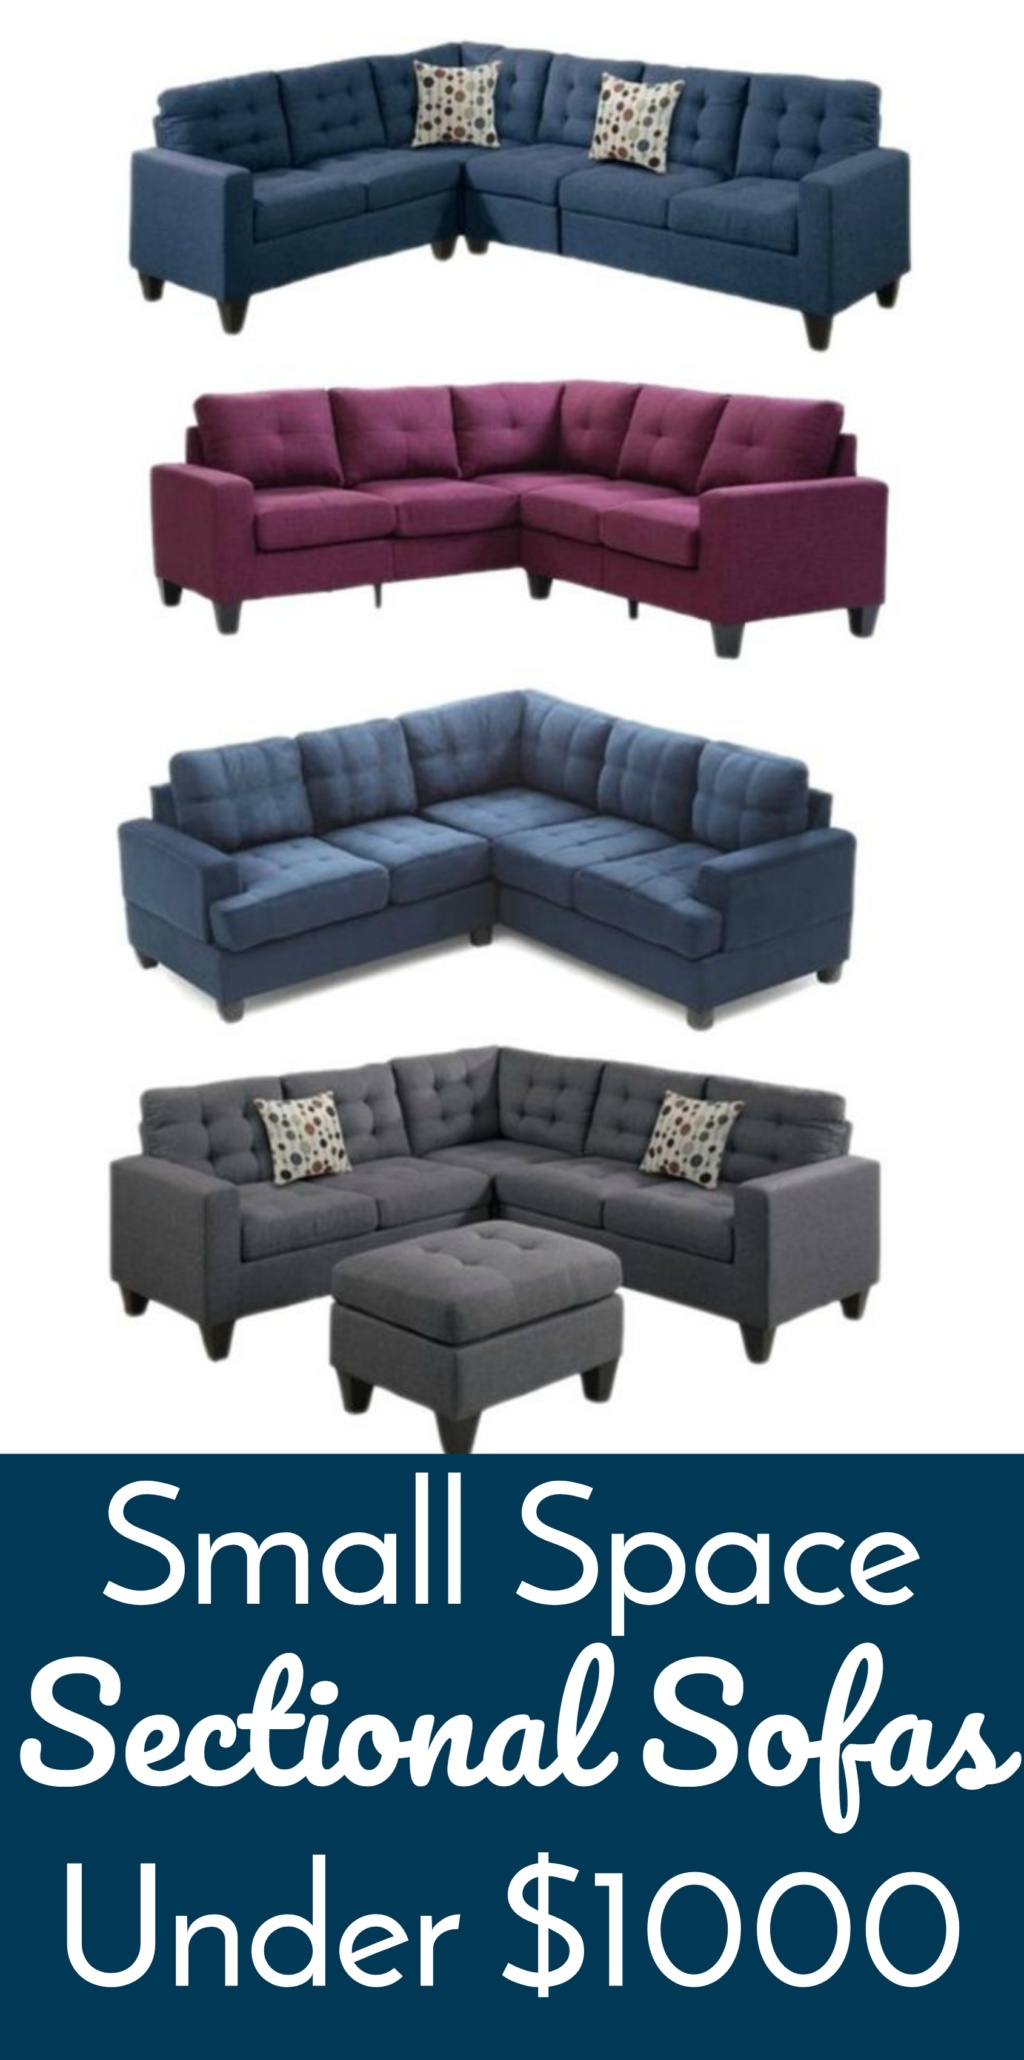 Small Space Sectional Sofas under $1000 Lifestyle For Real Life